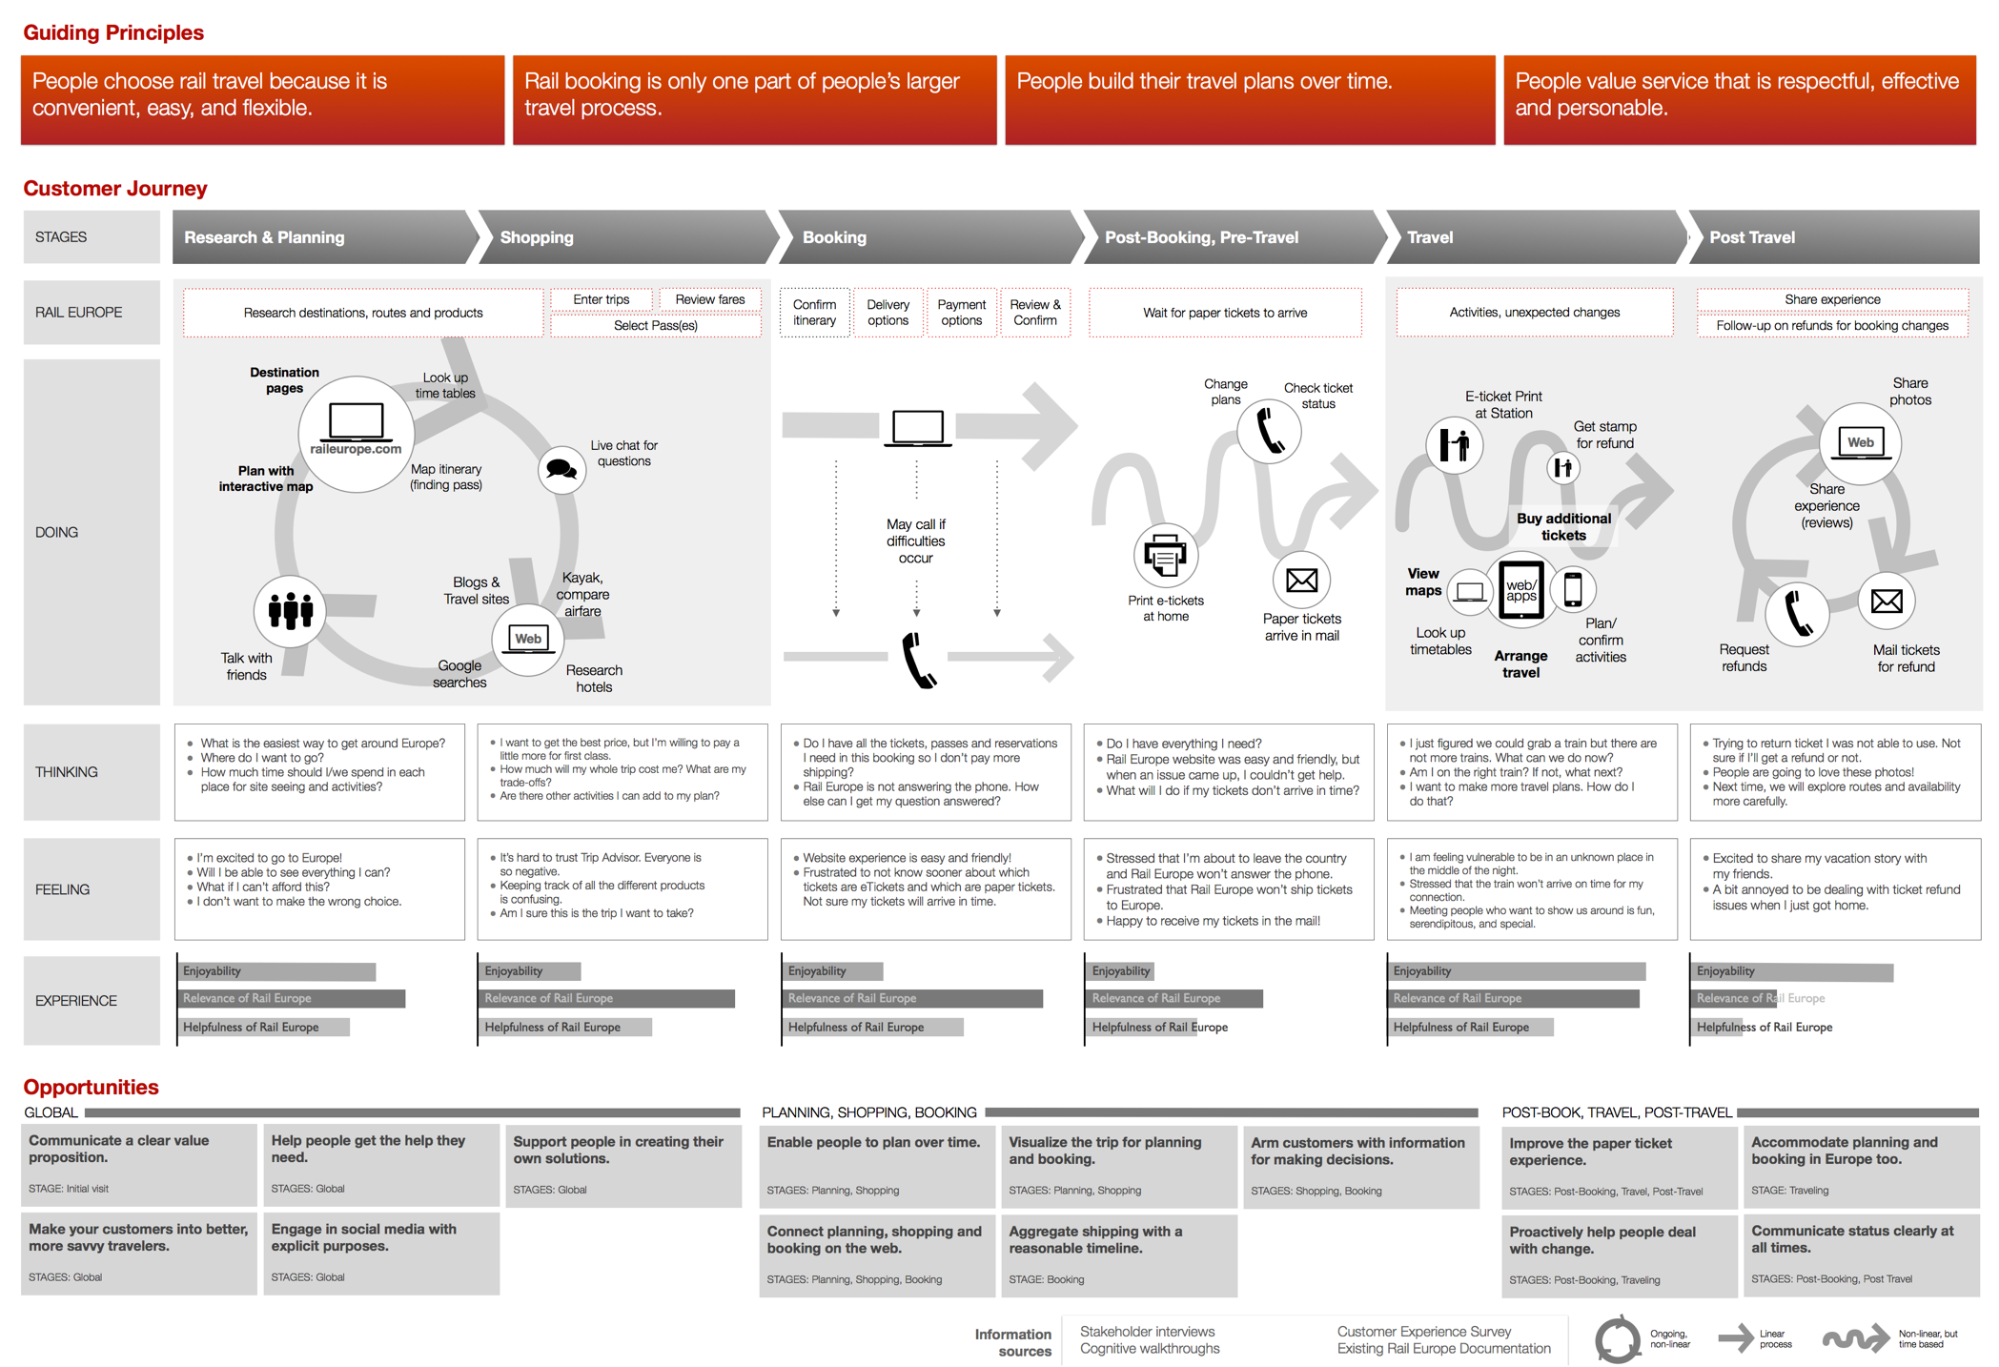 customer journey maps are part of the UX design process